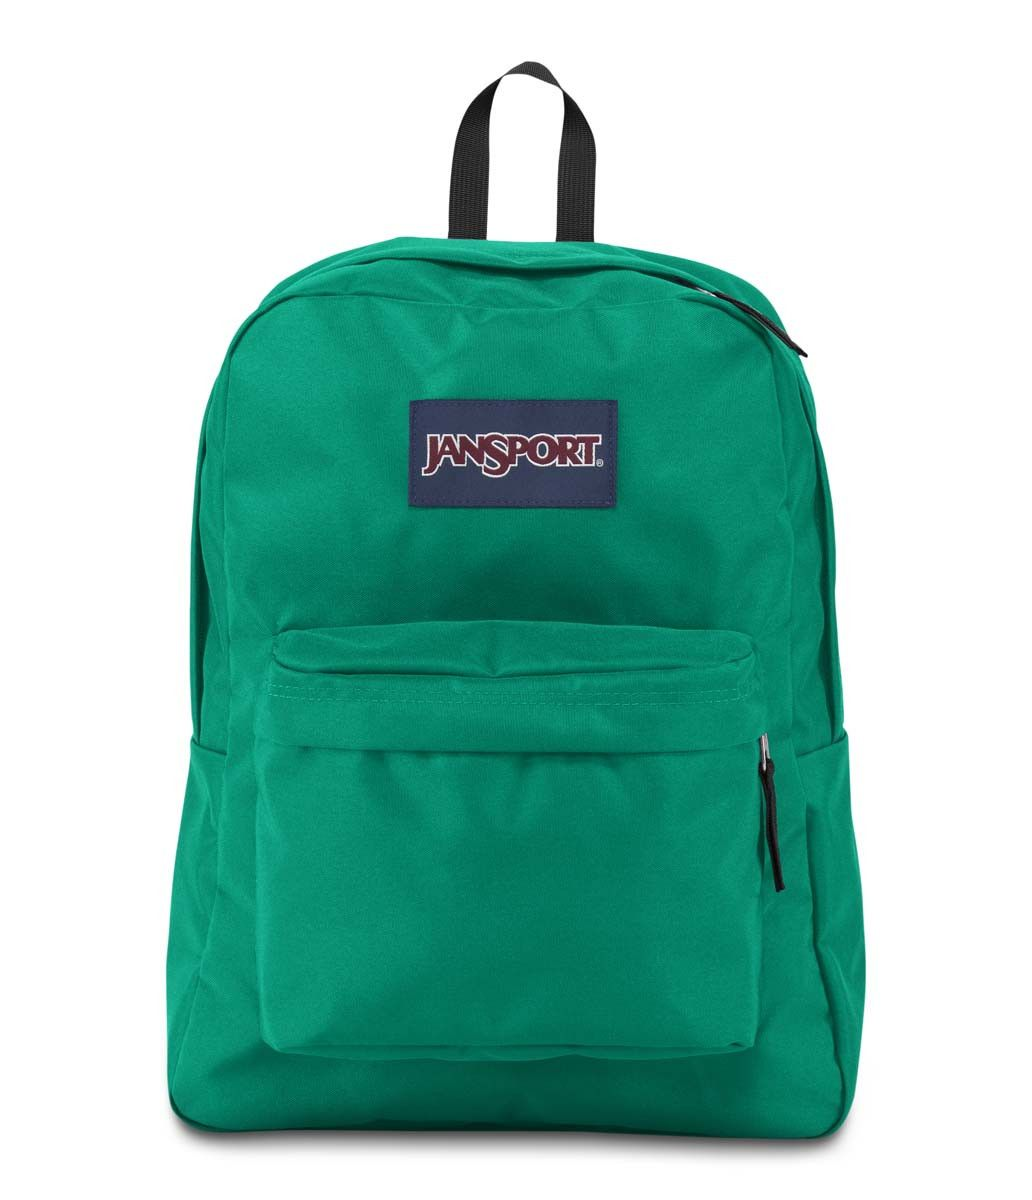 Mochila Jansport Superbreak Verde